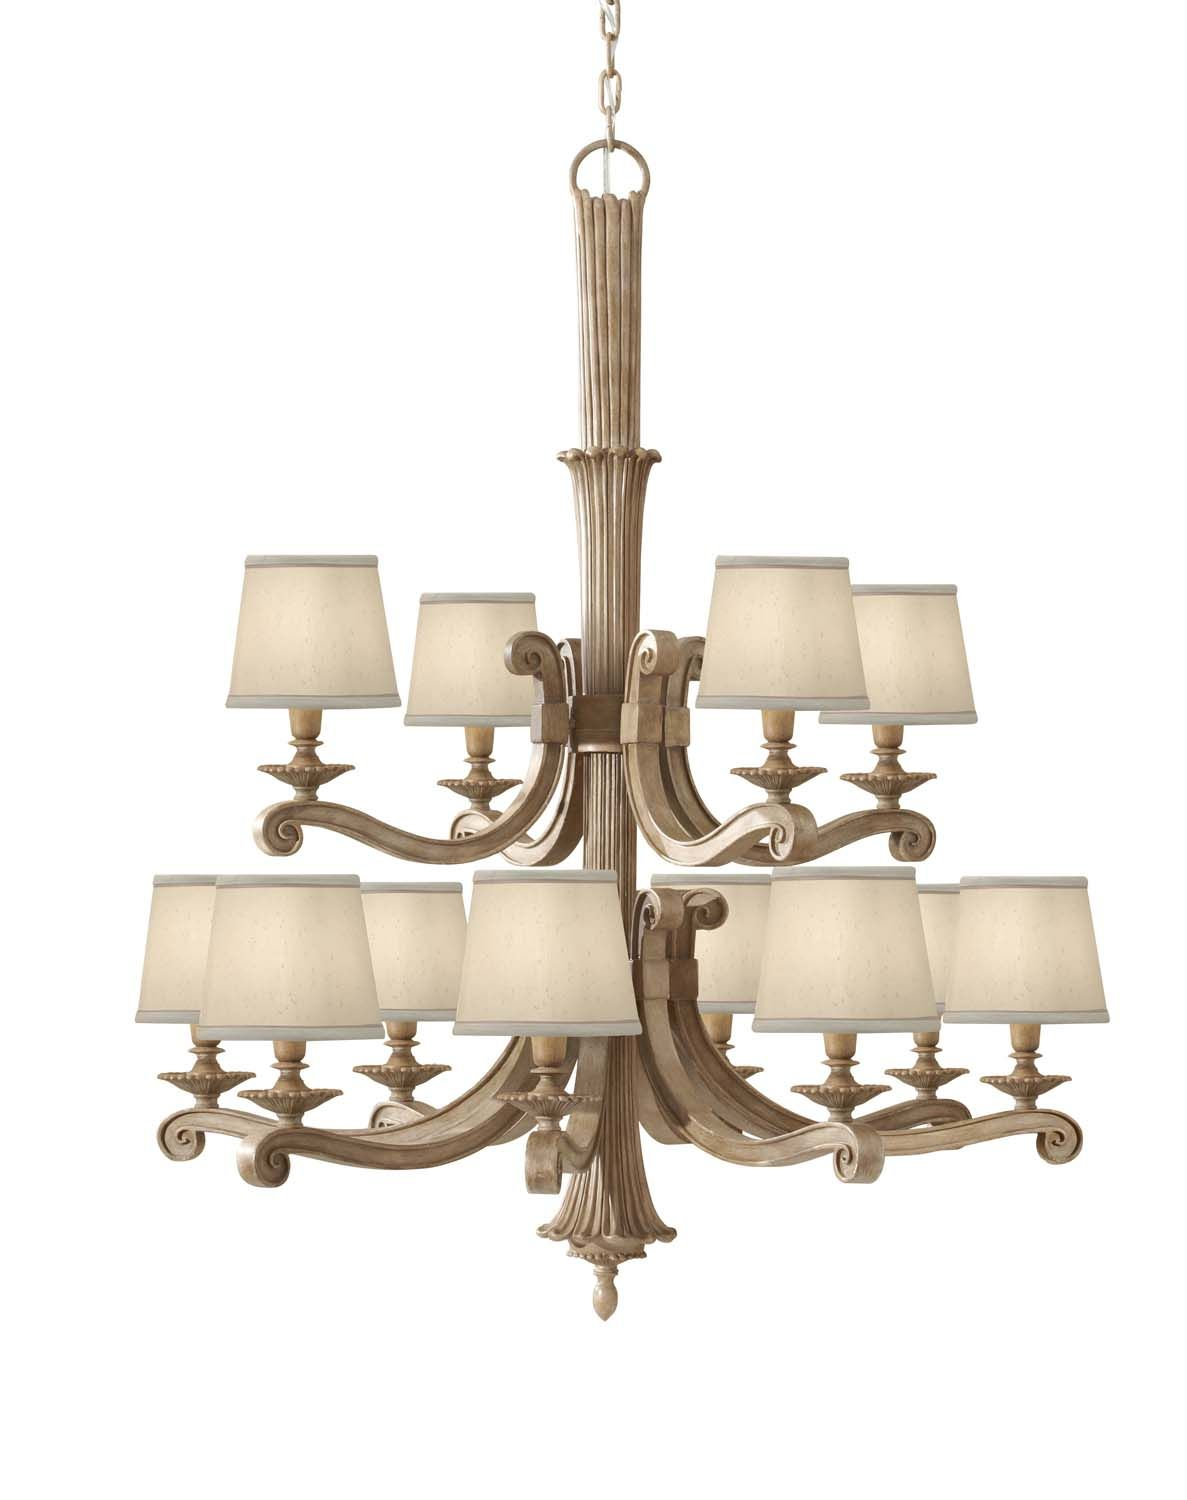 Blaire Chandelier In A Medium Aged Wood Finish Imitate Traditional Carved Light Each Candelabra Is Covered With Cream Beige Shantung Fabric Shade